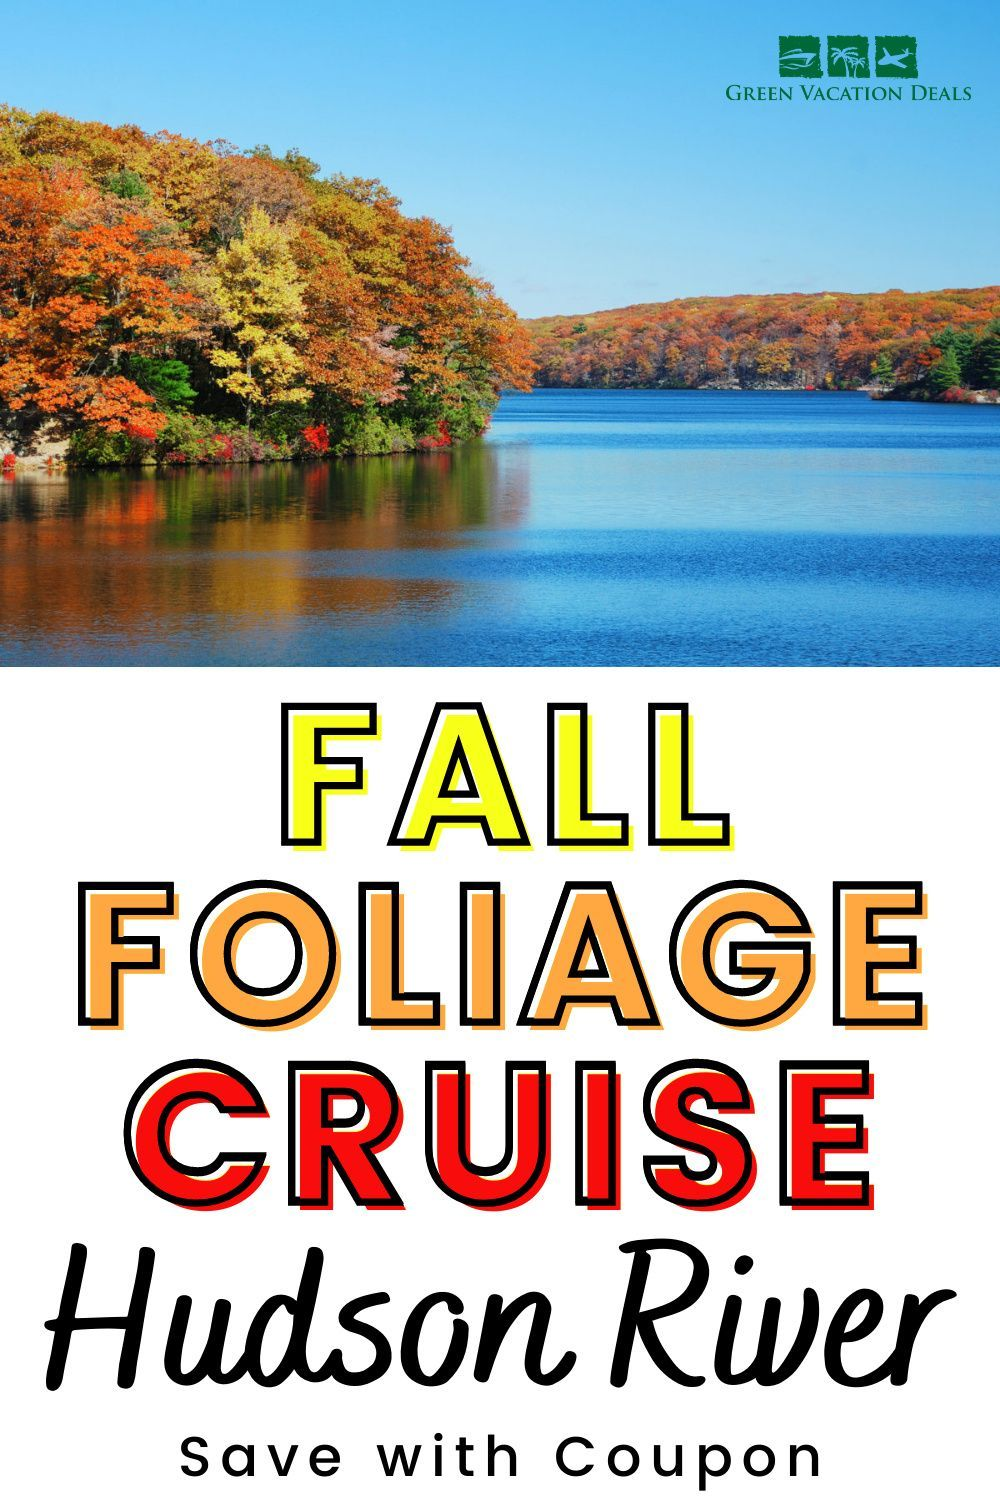 Hudson River Fall Foliage Cruise Coupon  Green Vacation Deals in